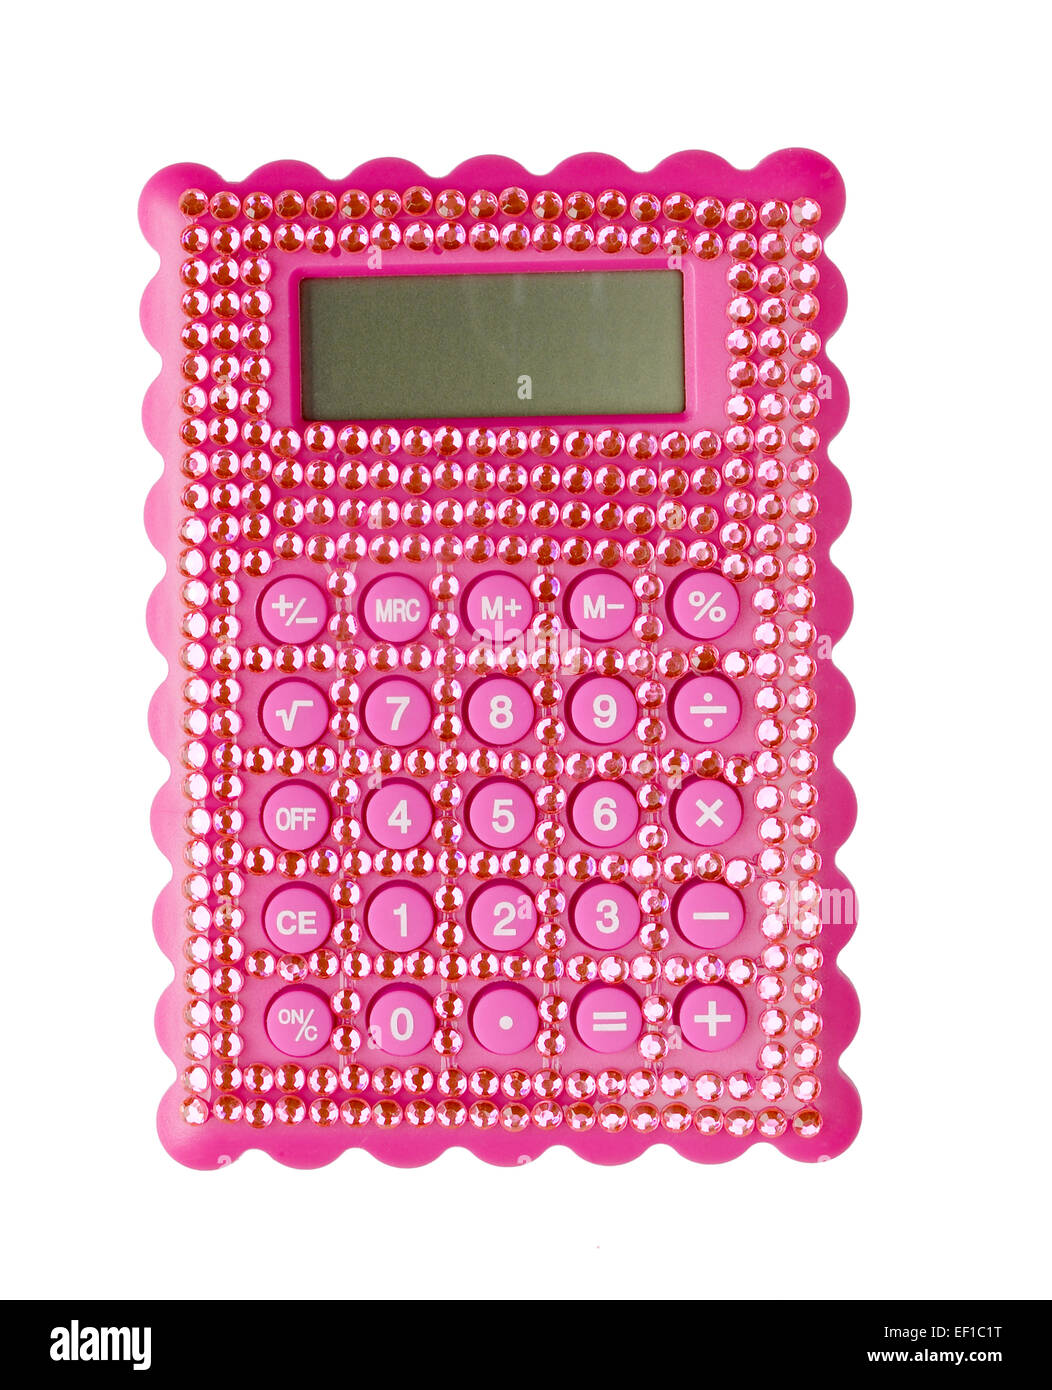 Pink bling Calculator - Stock Image